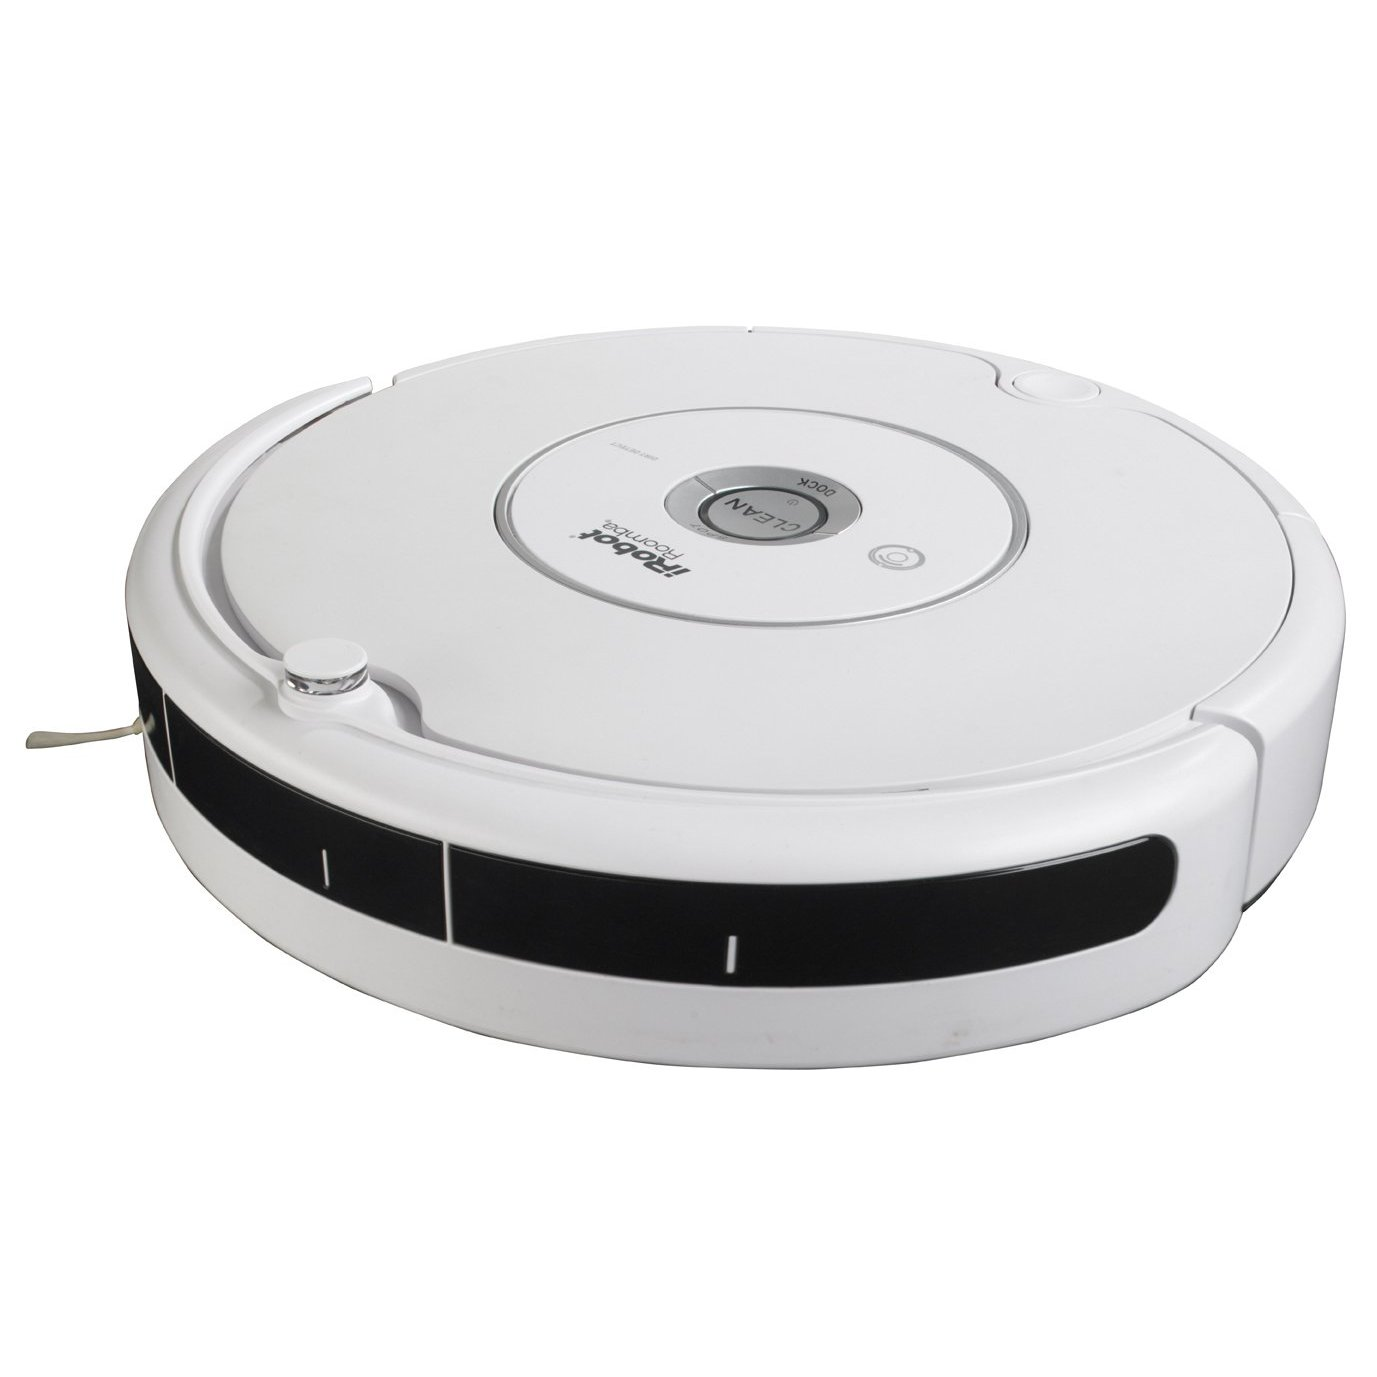 iRobot 530 Roomba Vacuuming Robot, White Review